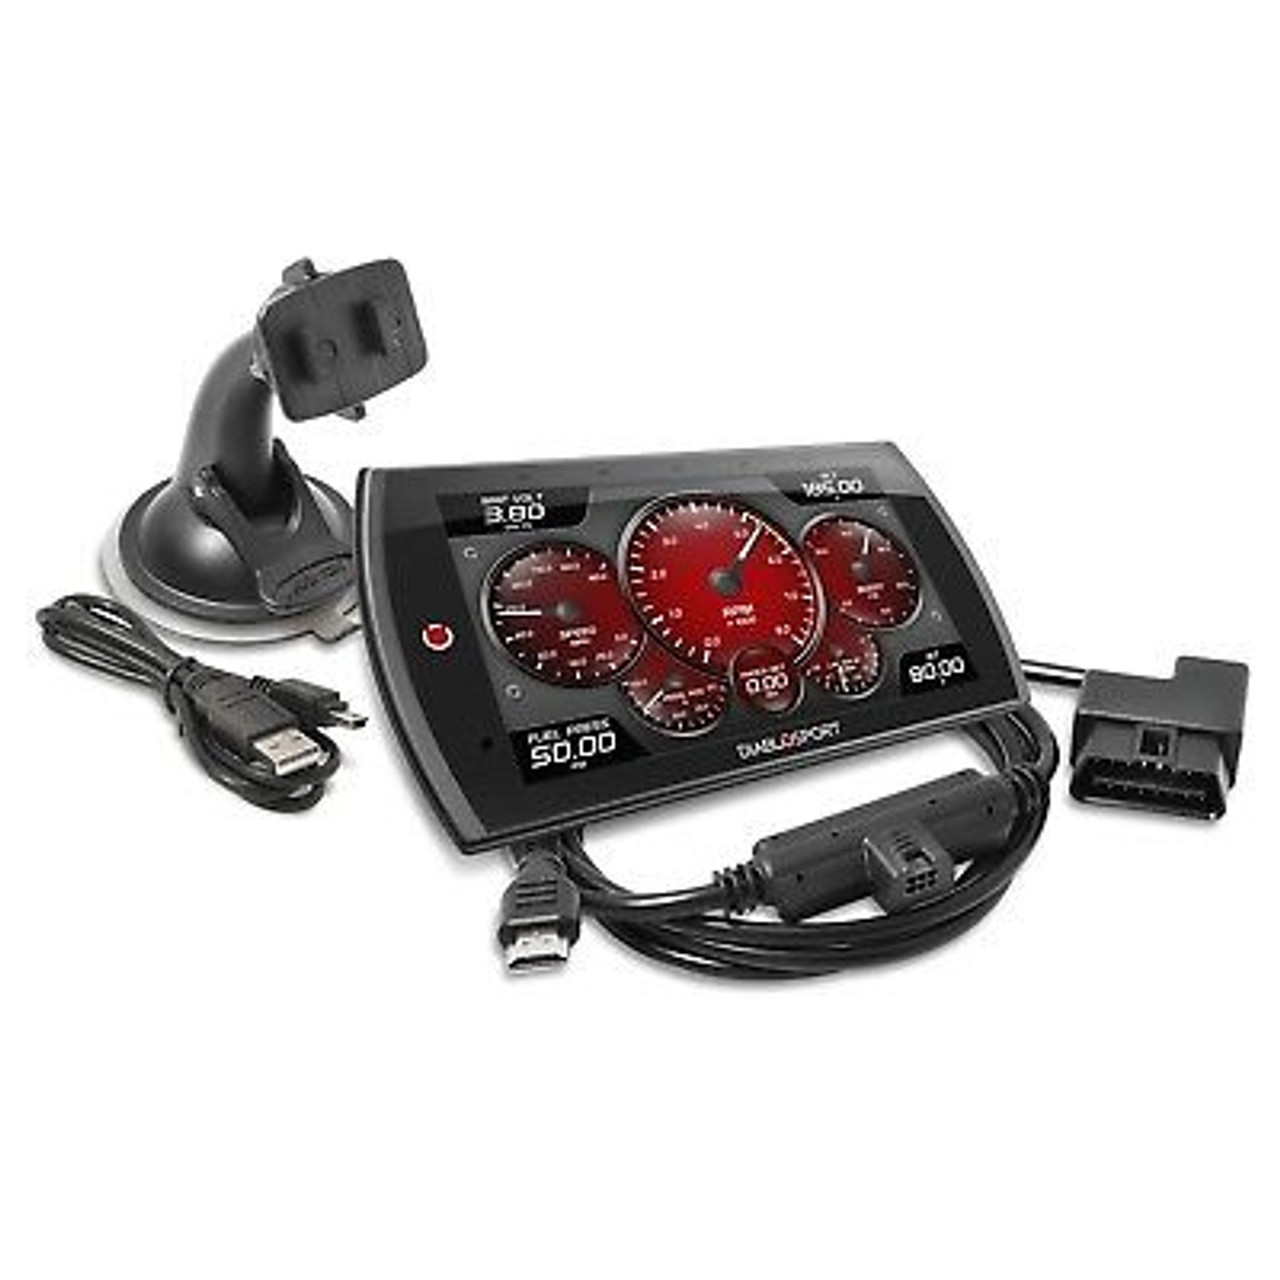 DIABLOSPORT TRINITY 2 MX MONITOR FORD DODGE CHEVY JEEP MONITOR ONLY - 9050